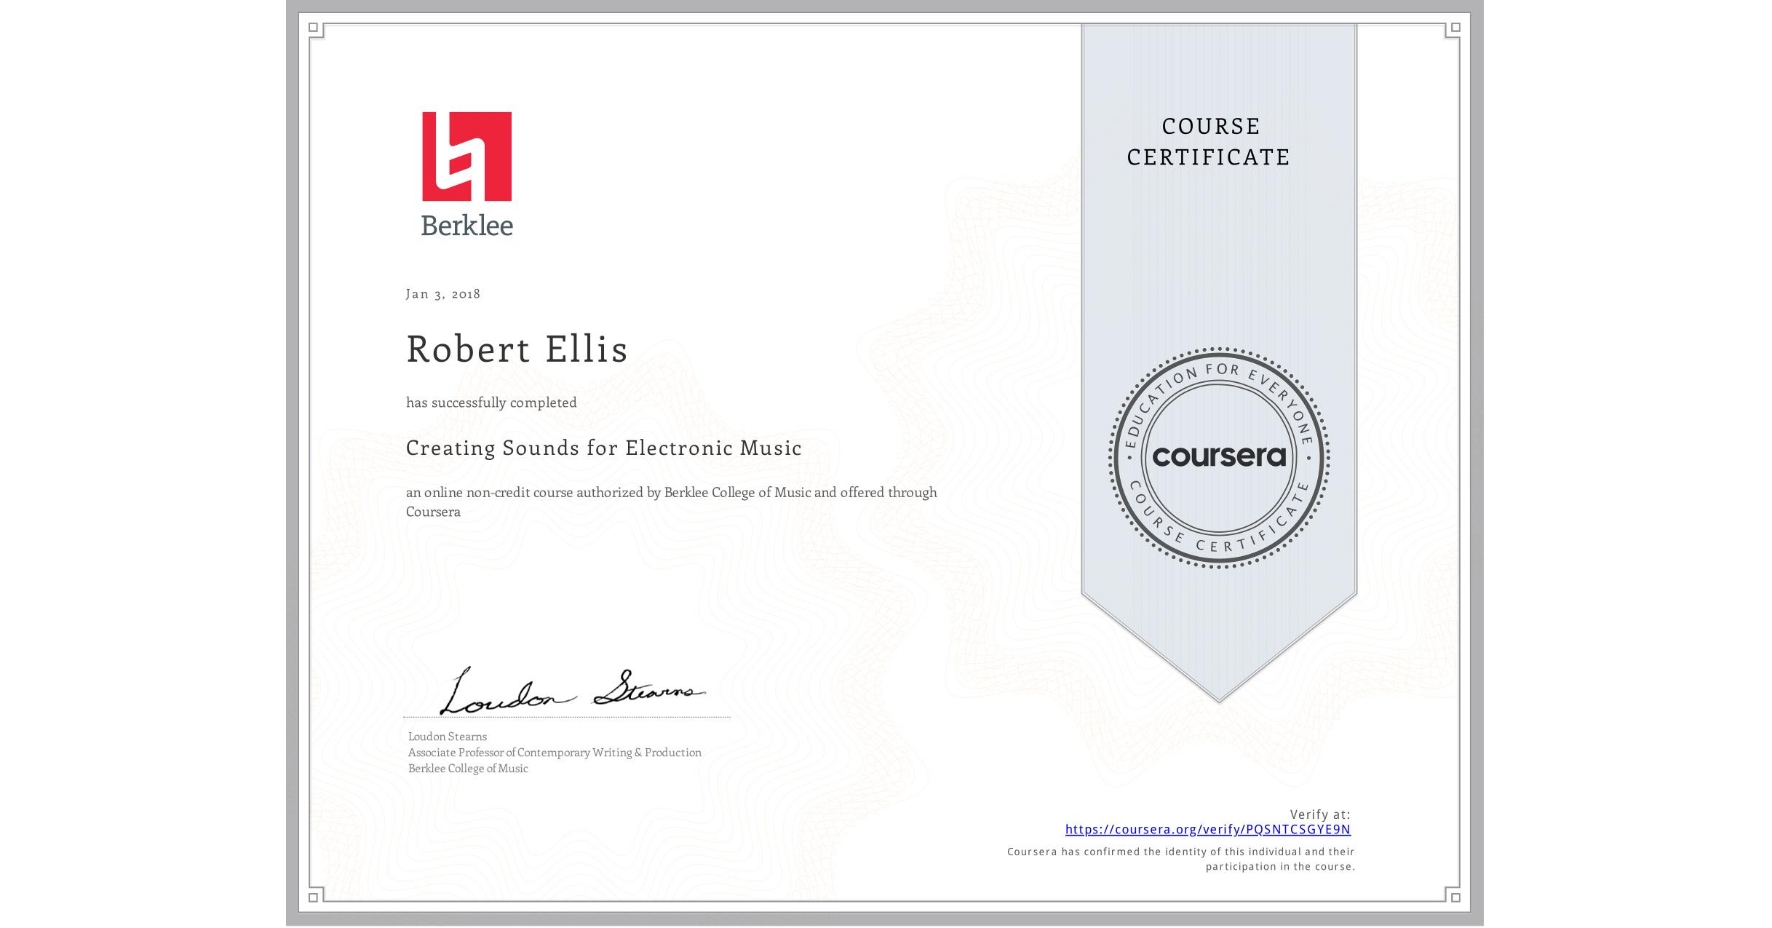 View certificate for Robert Ellis, Creating Sounds for Electronic Music, an online non-credit course authorized by Berklee College of Music and offered through Coursera